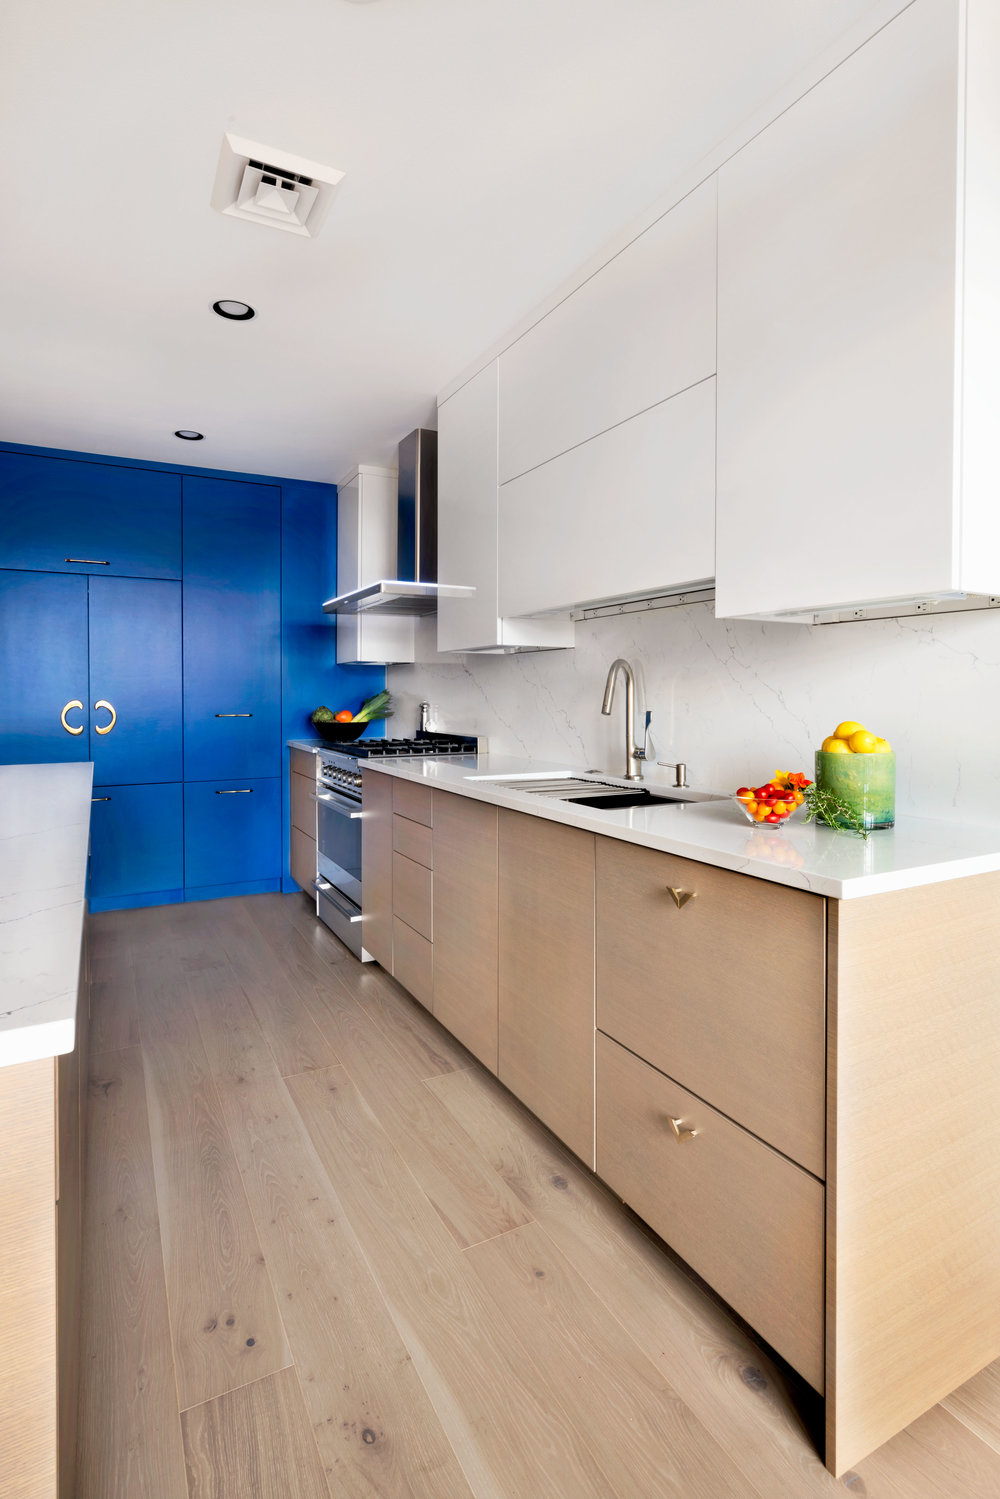 Modern finishes and color pop in the narrow kitchen.